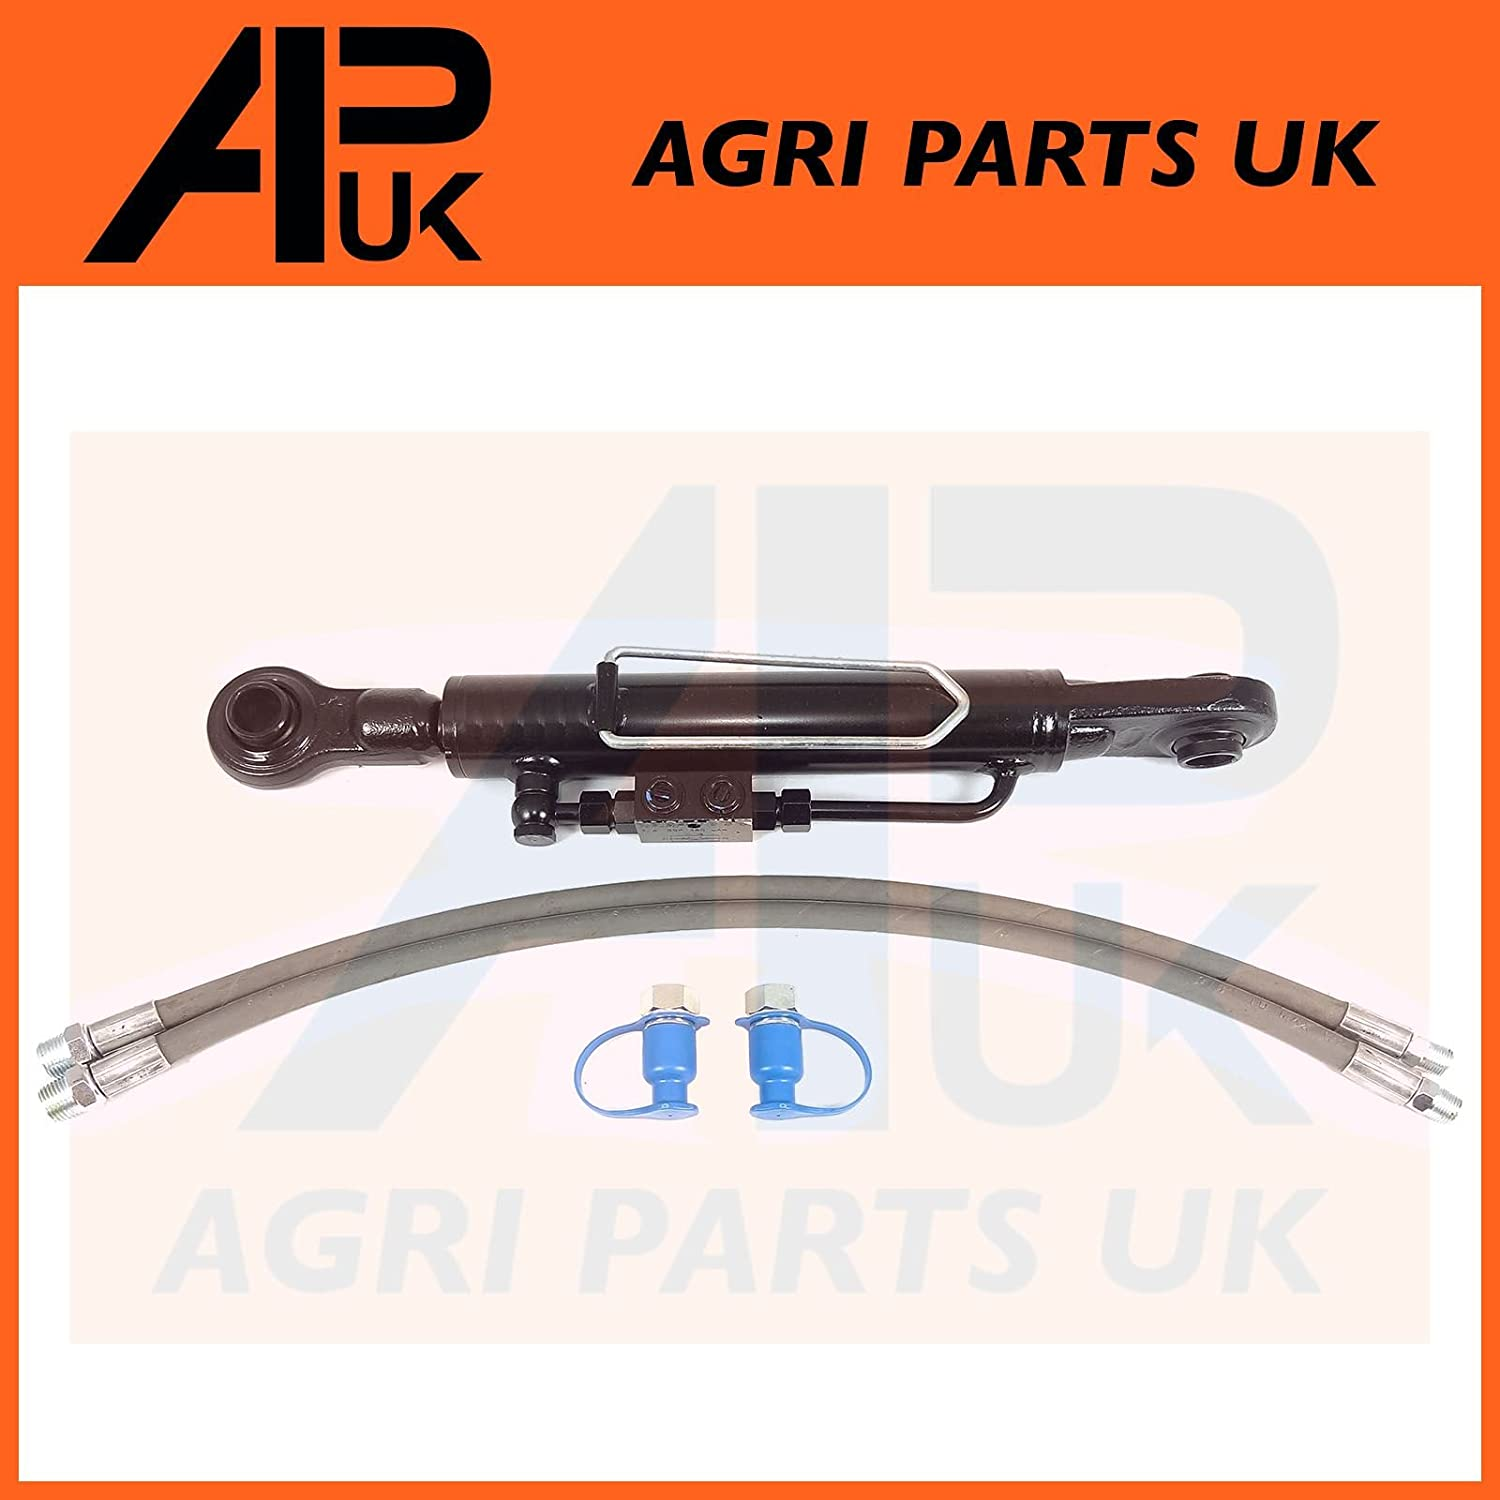 22' Hydraulic Toplink Top Link Cat 2 for Ford John Deere Massey Ferguson Tractor Agri Parts UK Ltd